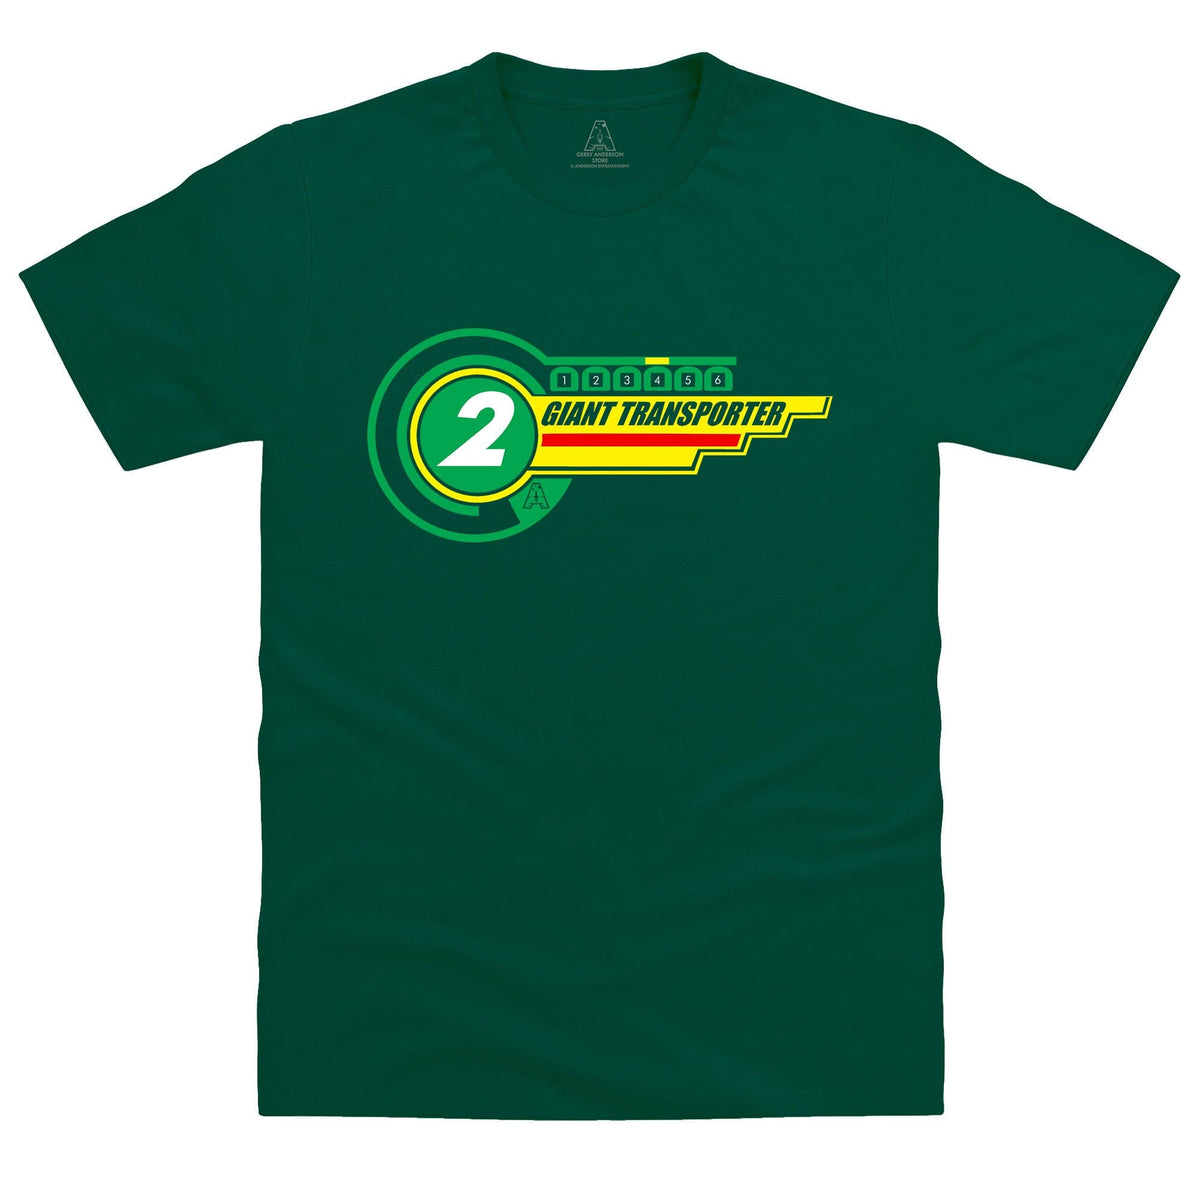 Thunderbird 2 Inspired Men's T-Shirt - The Gerry Anderson Store